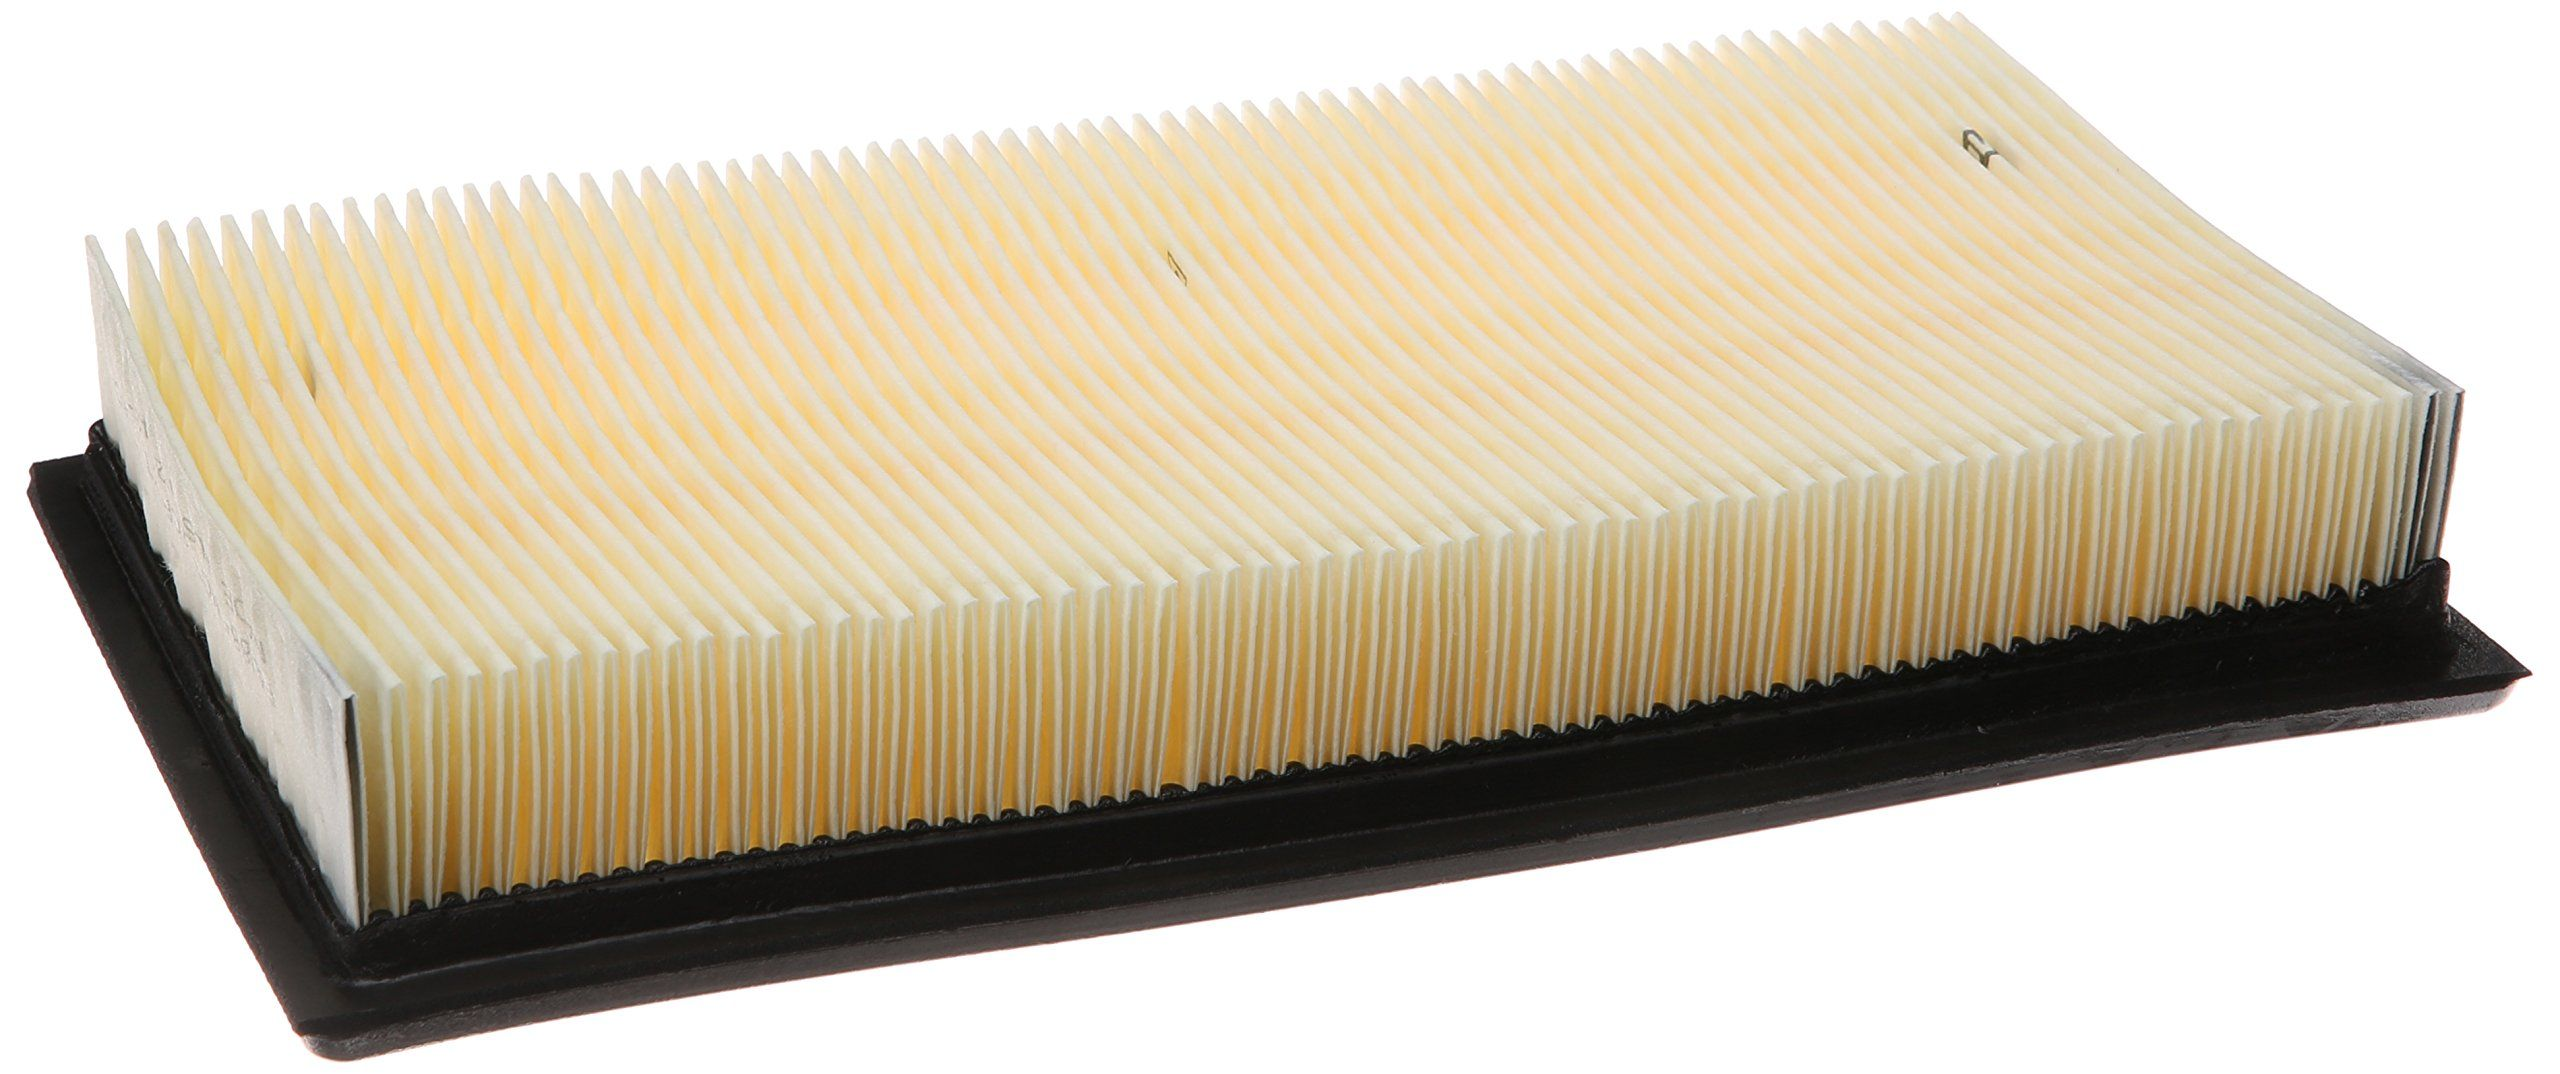 Motorcraft Fa1884 Air Filter Automotive Parts And Accessories Show Details For Dorman 923009 Tail Lamp Circuit Board